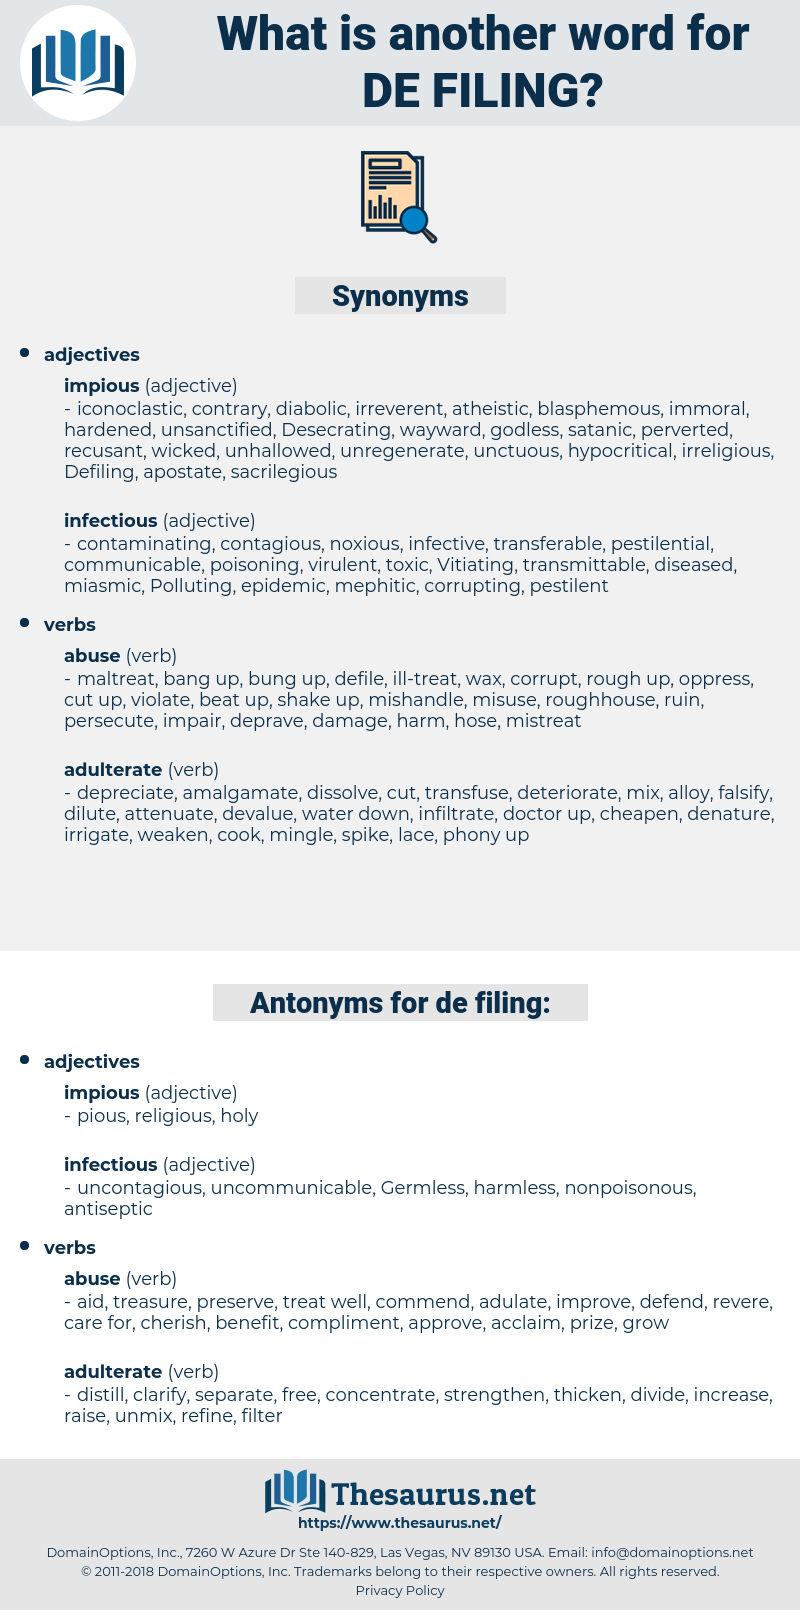 de-filing, synonym de-filing, another word for de-filing, words like de-filing, thesaurus de-filing